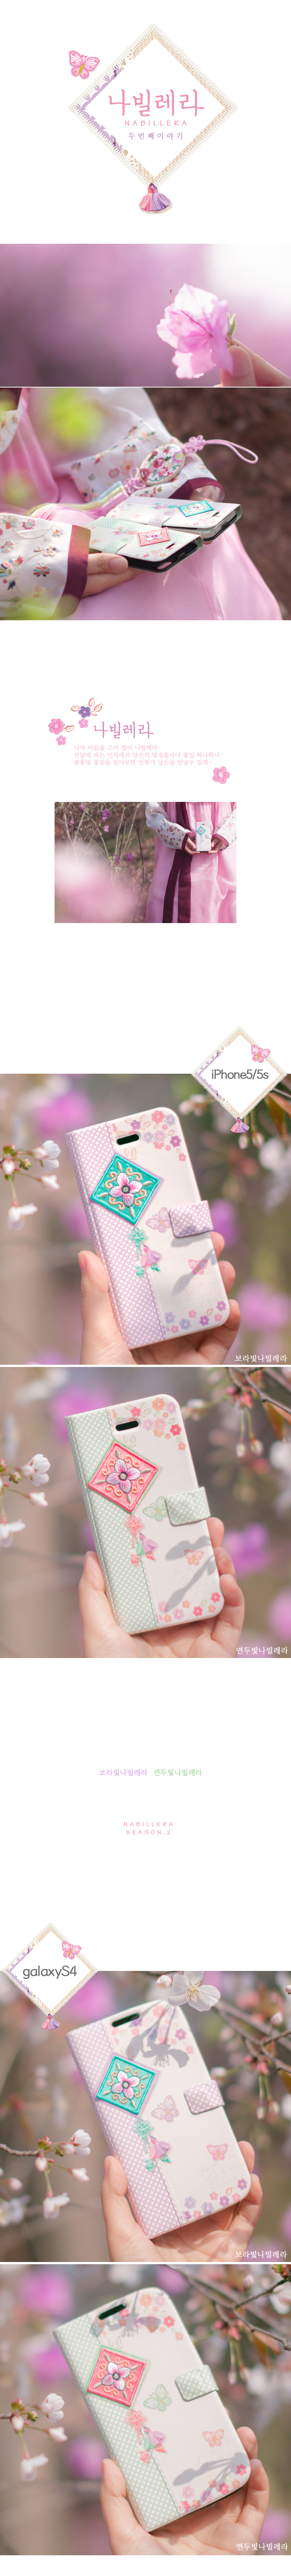 [HAPPYMORI] Flip Cover Case _ nabilera2 (iPhone4_4s,iPhone5_5s,iPhone6_6s)